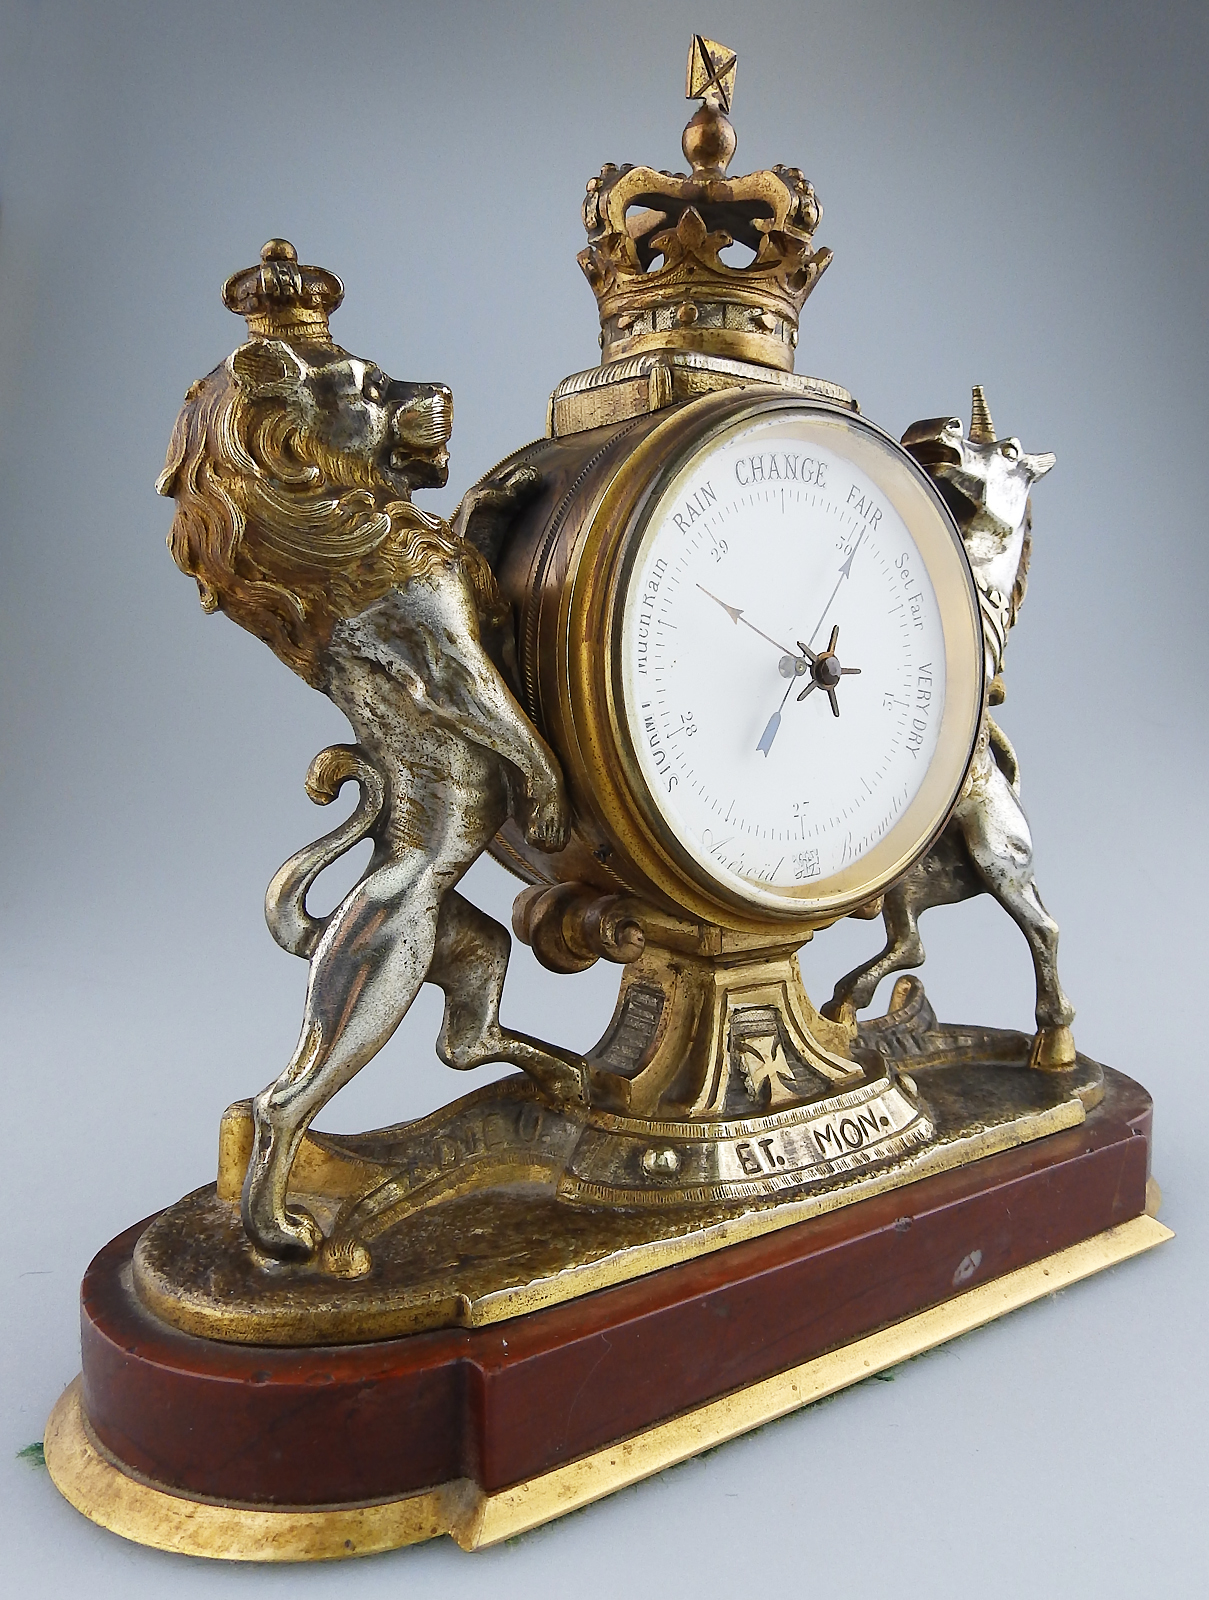 Antique Desk Accessories : A RARE novelty Royal Arms Aneroid Barometer  C.19th/20thC - Antique Desk Accessories : A RARE Novelty Royal Arms Aneroid